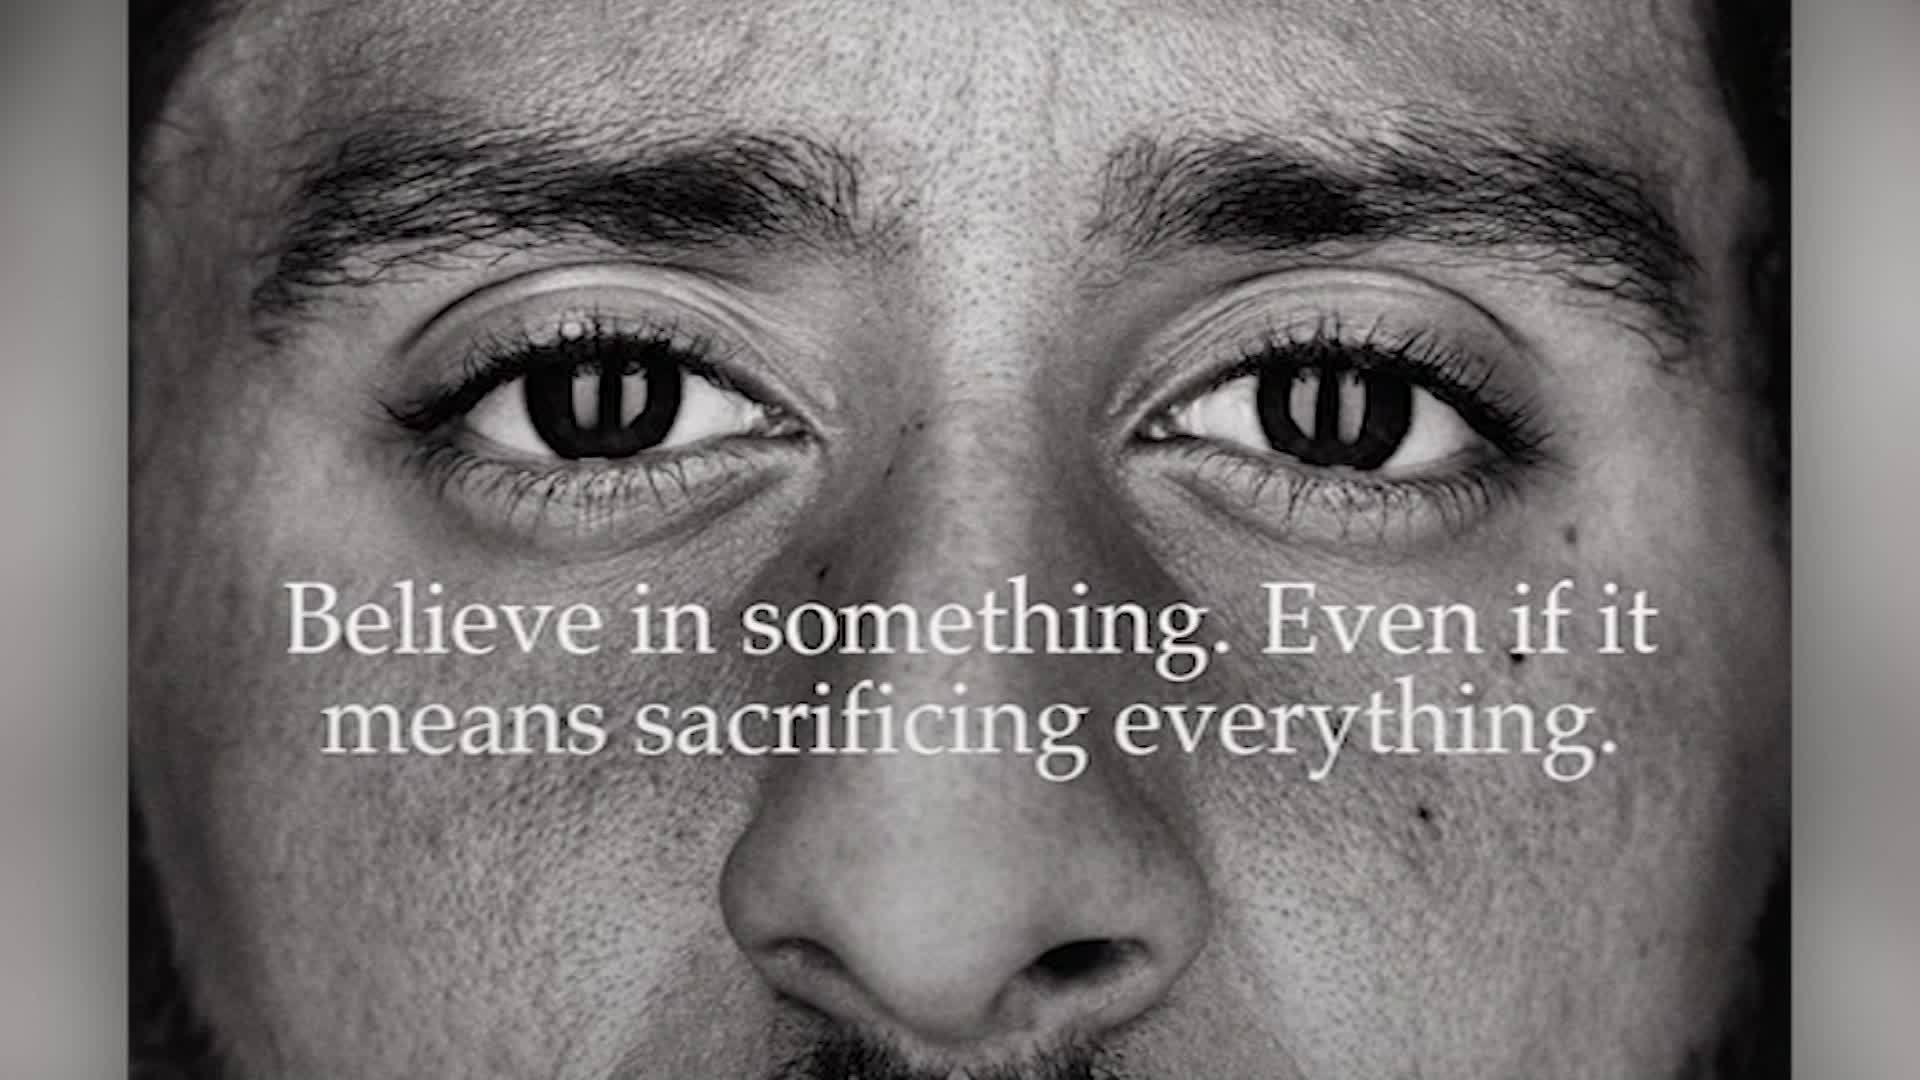 Colin Kaepernick named as face of Nike's 30th anniversary 'Just Do It' campaign